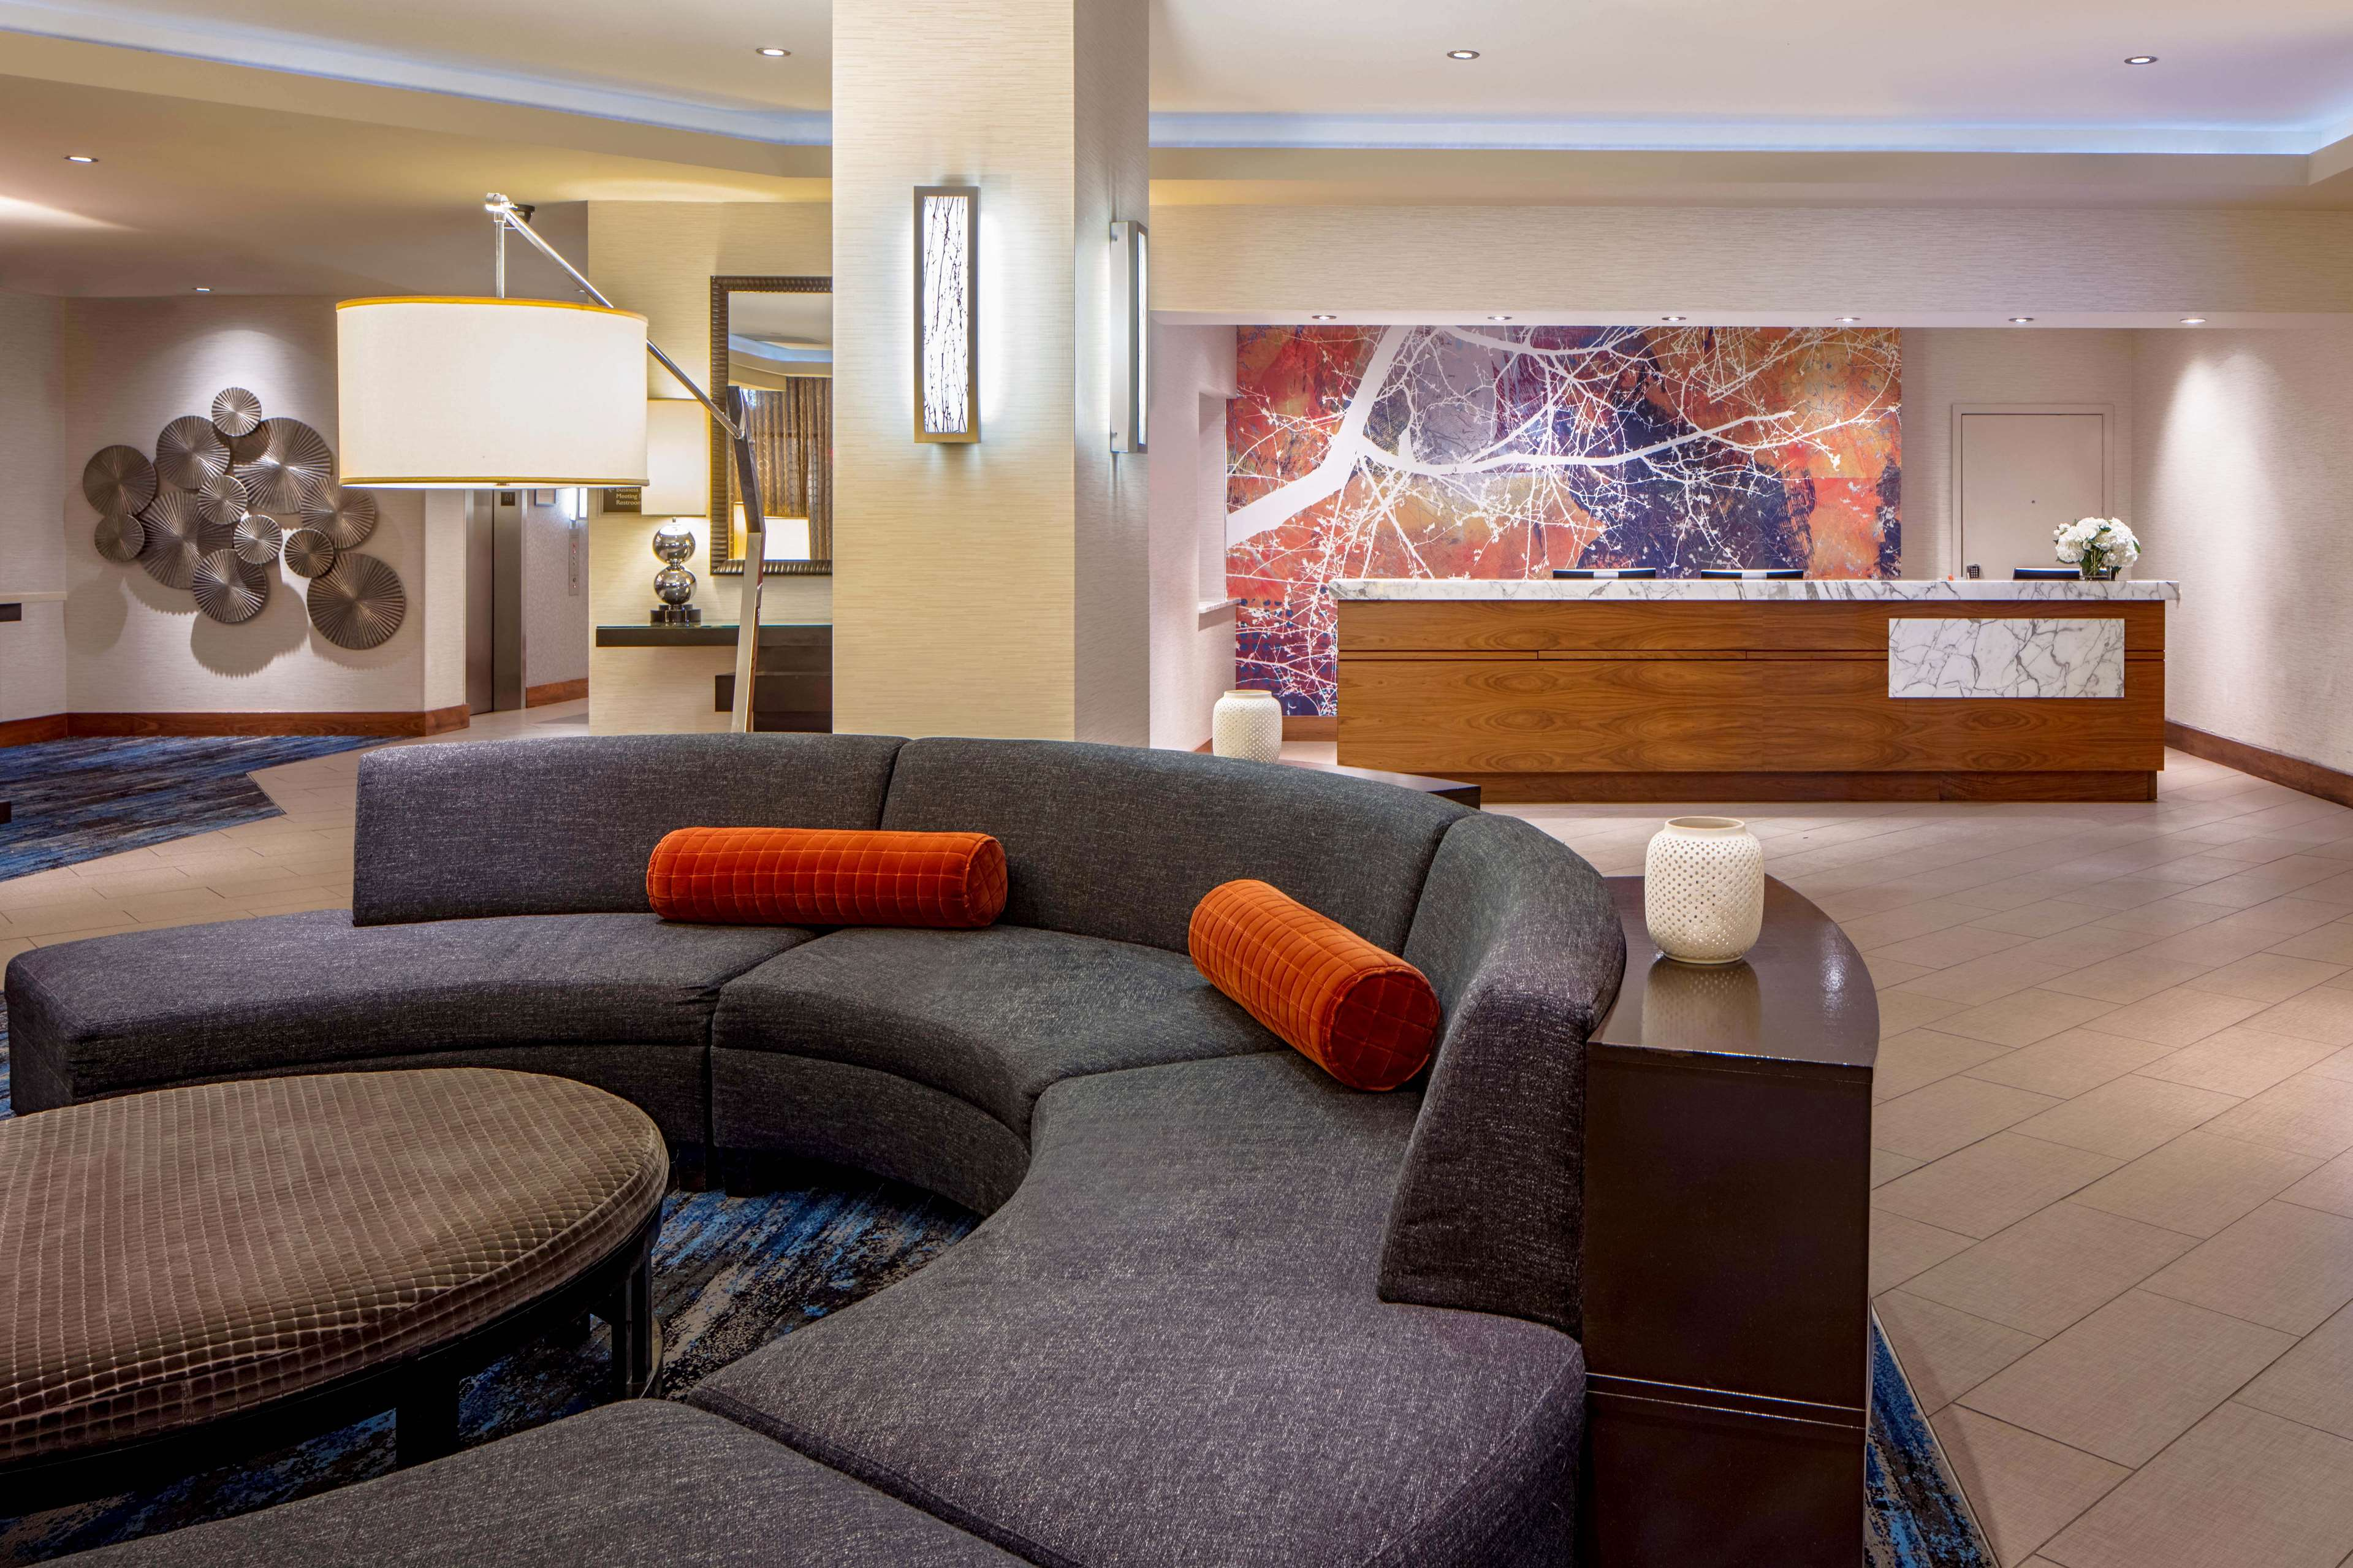 DoubleTree Suites by Hilton Hotel Minneapolis image 4